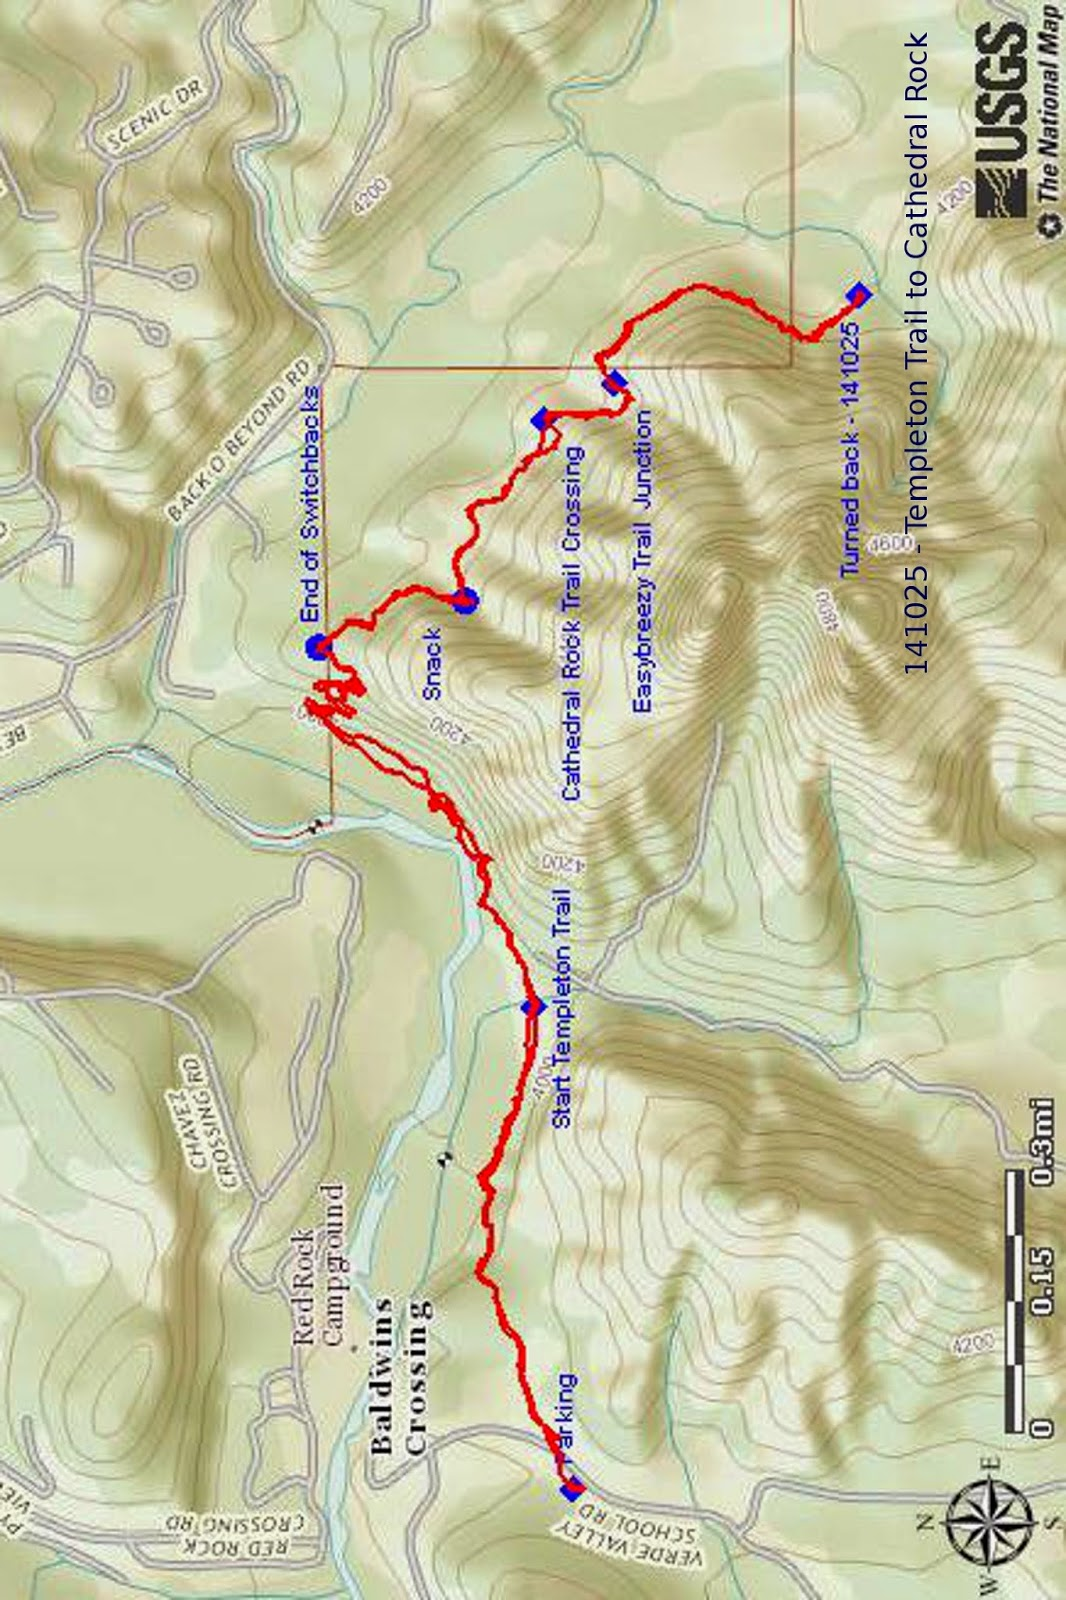 our track is shown in red on the included map see next page